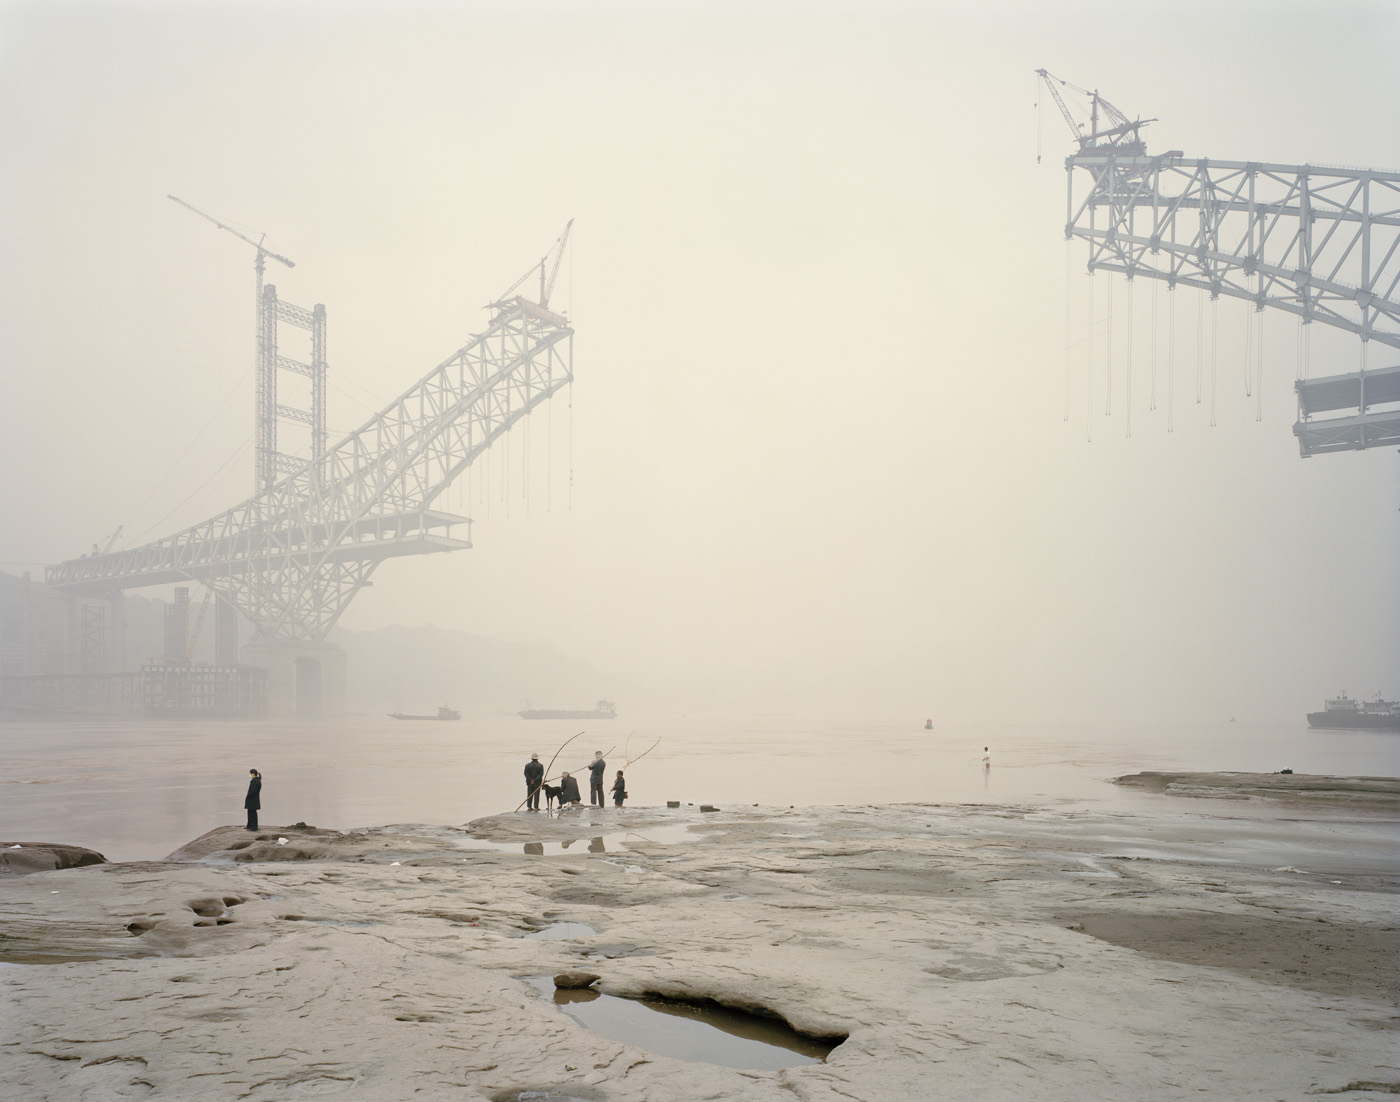 Nadav Kander Winner Series: Yangtze, The Long River 2006-2007, Chongqing, China